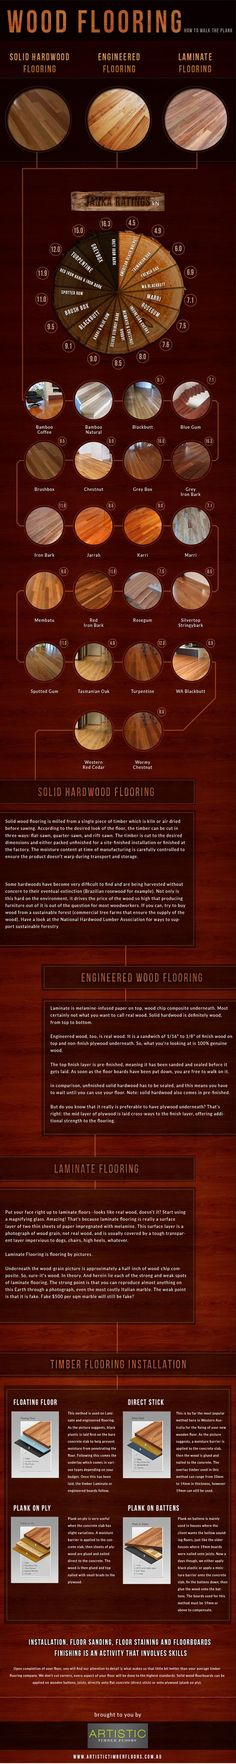 Wood Flooring - How to walk the plank. This Info-graphic introduces the 3 main types of wood flooring which are: Solid hardwood flooring, Engineered flooring and Laminate flooring. Types Of Wood Flooring, Timber Flooring, Laminate Flooring, Hardwood Floors, Flooring Ideas, Hardwood Types, Grey Laminate, Modern Flooring, Farmhouse Flooring